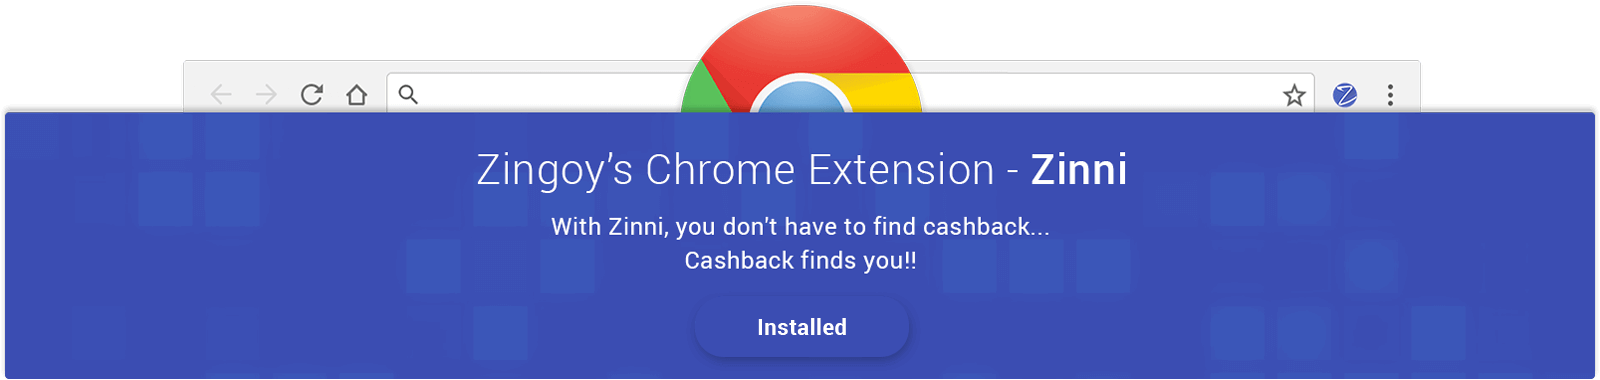 Zingoy Chrome Extension Zinni